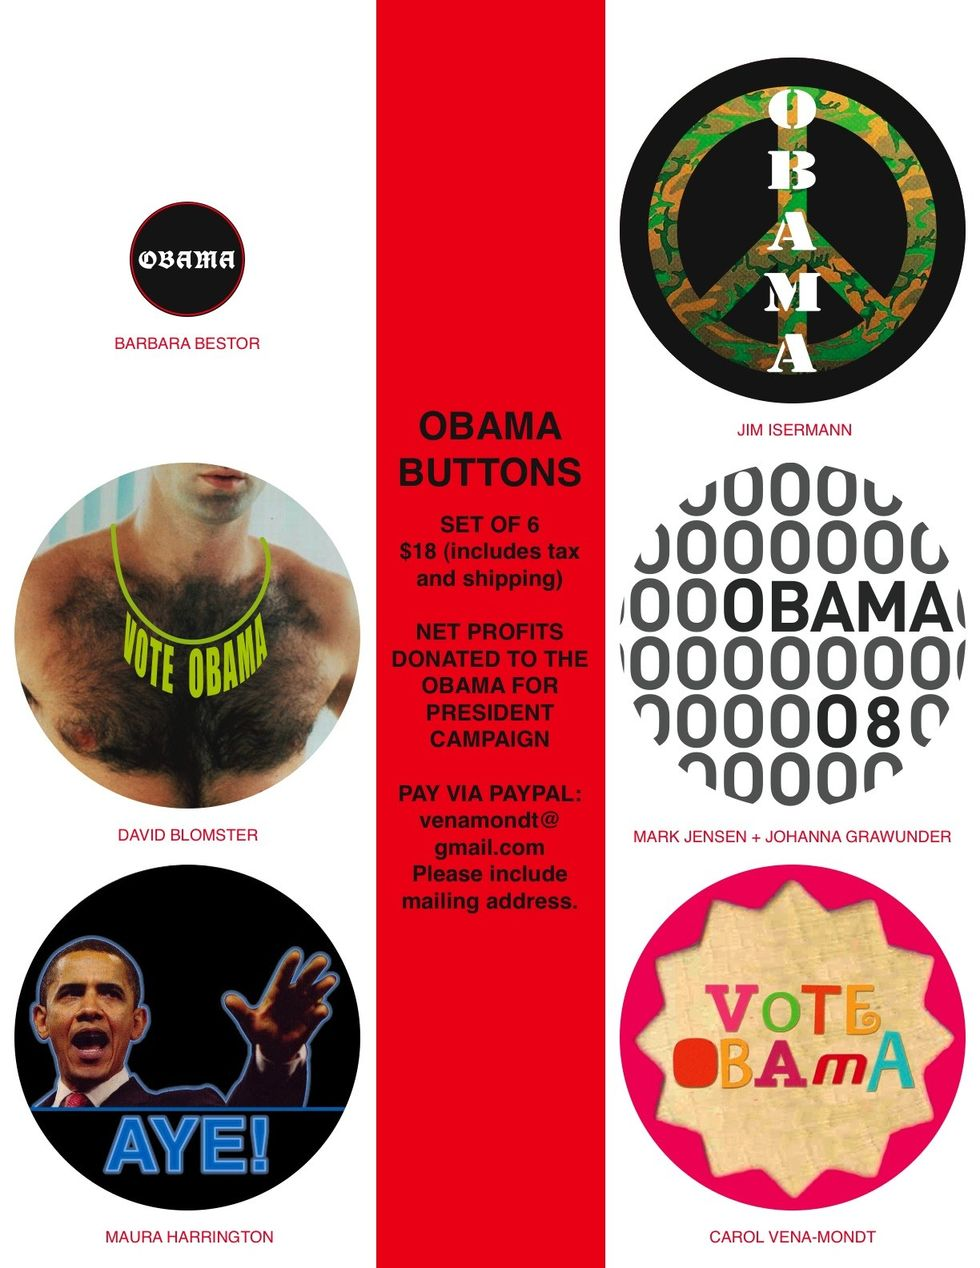 Obama Buttons!